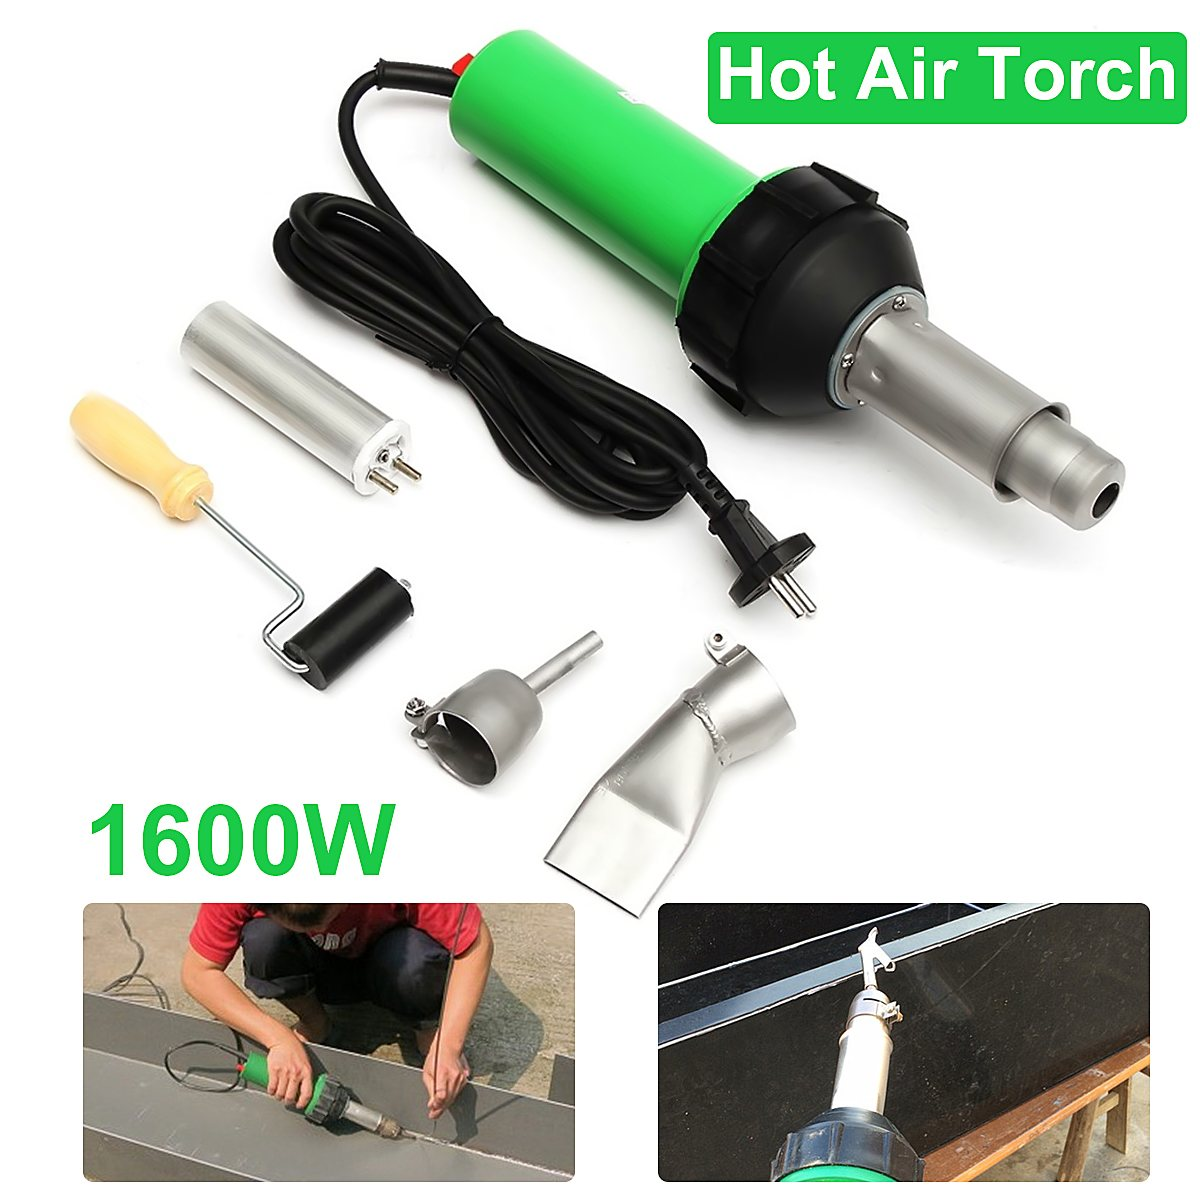 High Quality 1600W 50Hz Electronic Heat Hot Air Torch Plastic Welding Welder Torch + Nozzle + Pressure Roller 3000Pa Tool Set 2017 high quality taiwan bao ss 621h digital adjustable warm air gun electric blower proskit plastic welding torch free shipping